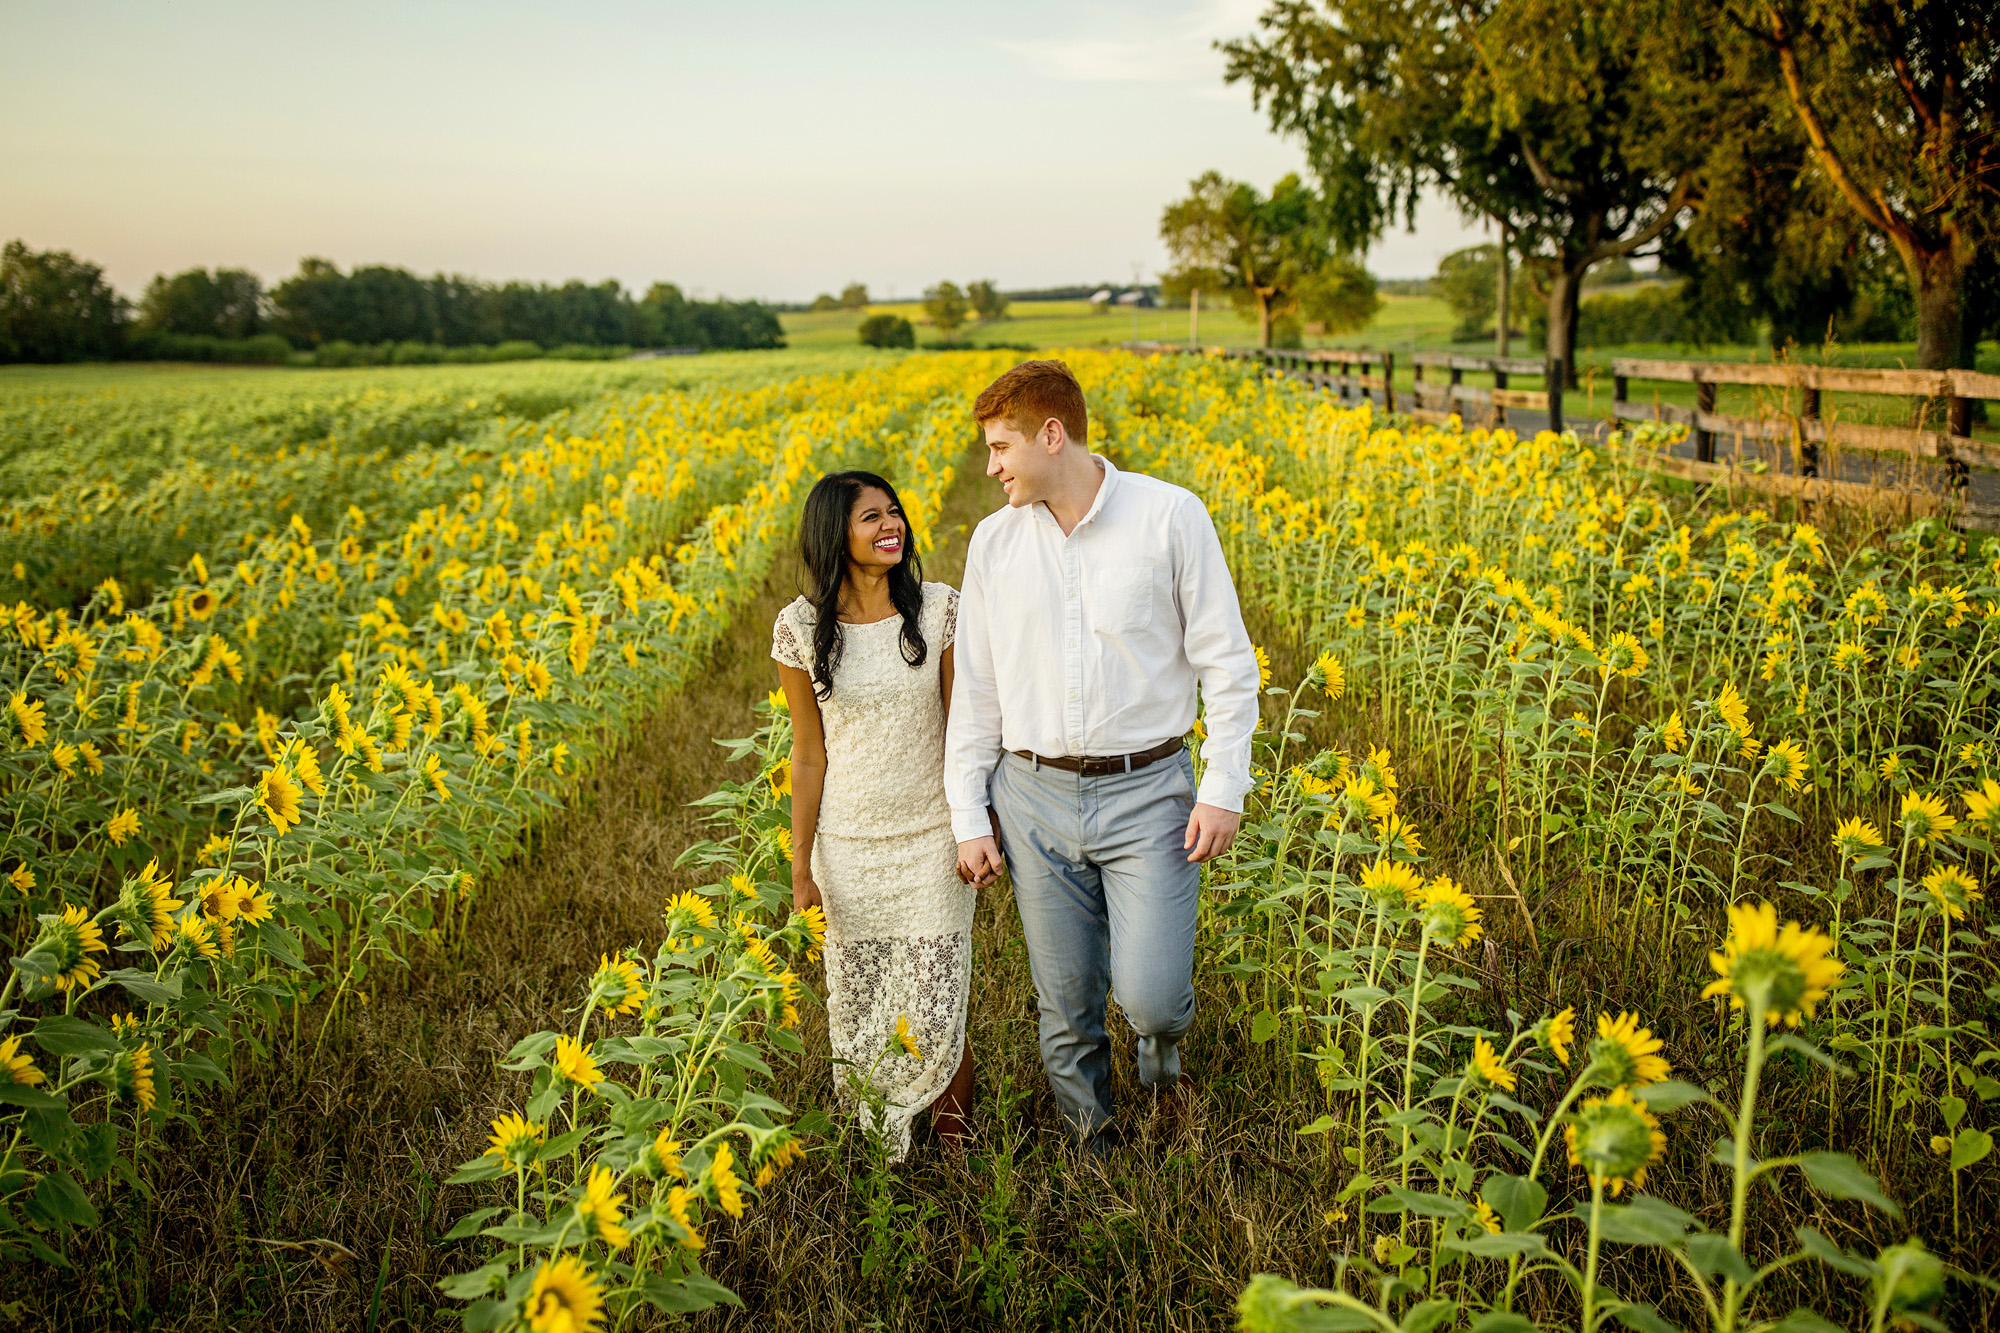 Seriously_Sabrina_Photography_Lexington_Midway_Kentucky_Engagement_Merefield_Sunflowers_Naz_and_Drew1.jpg